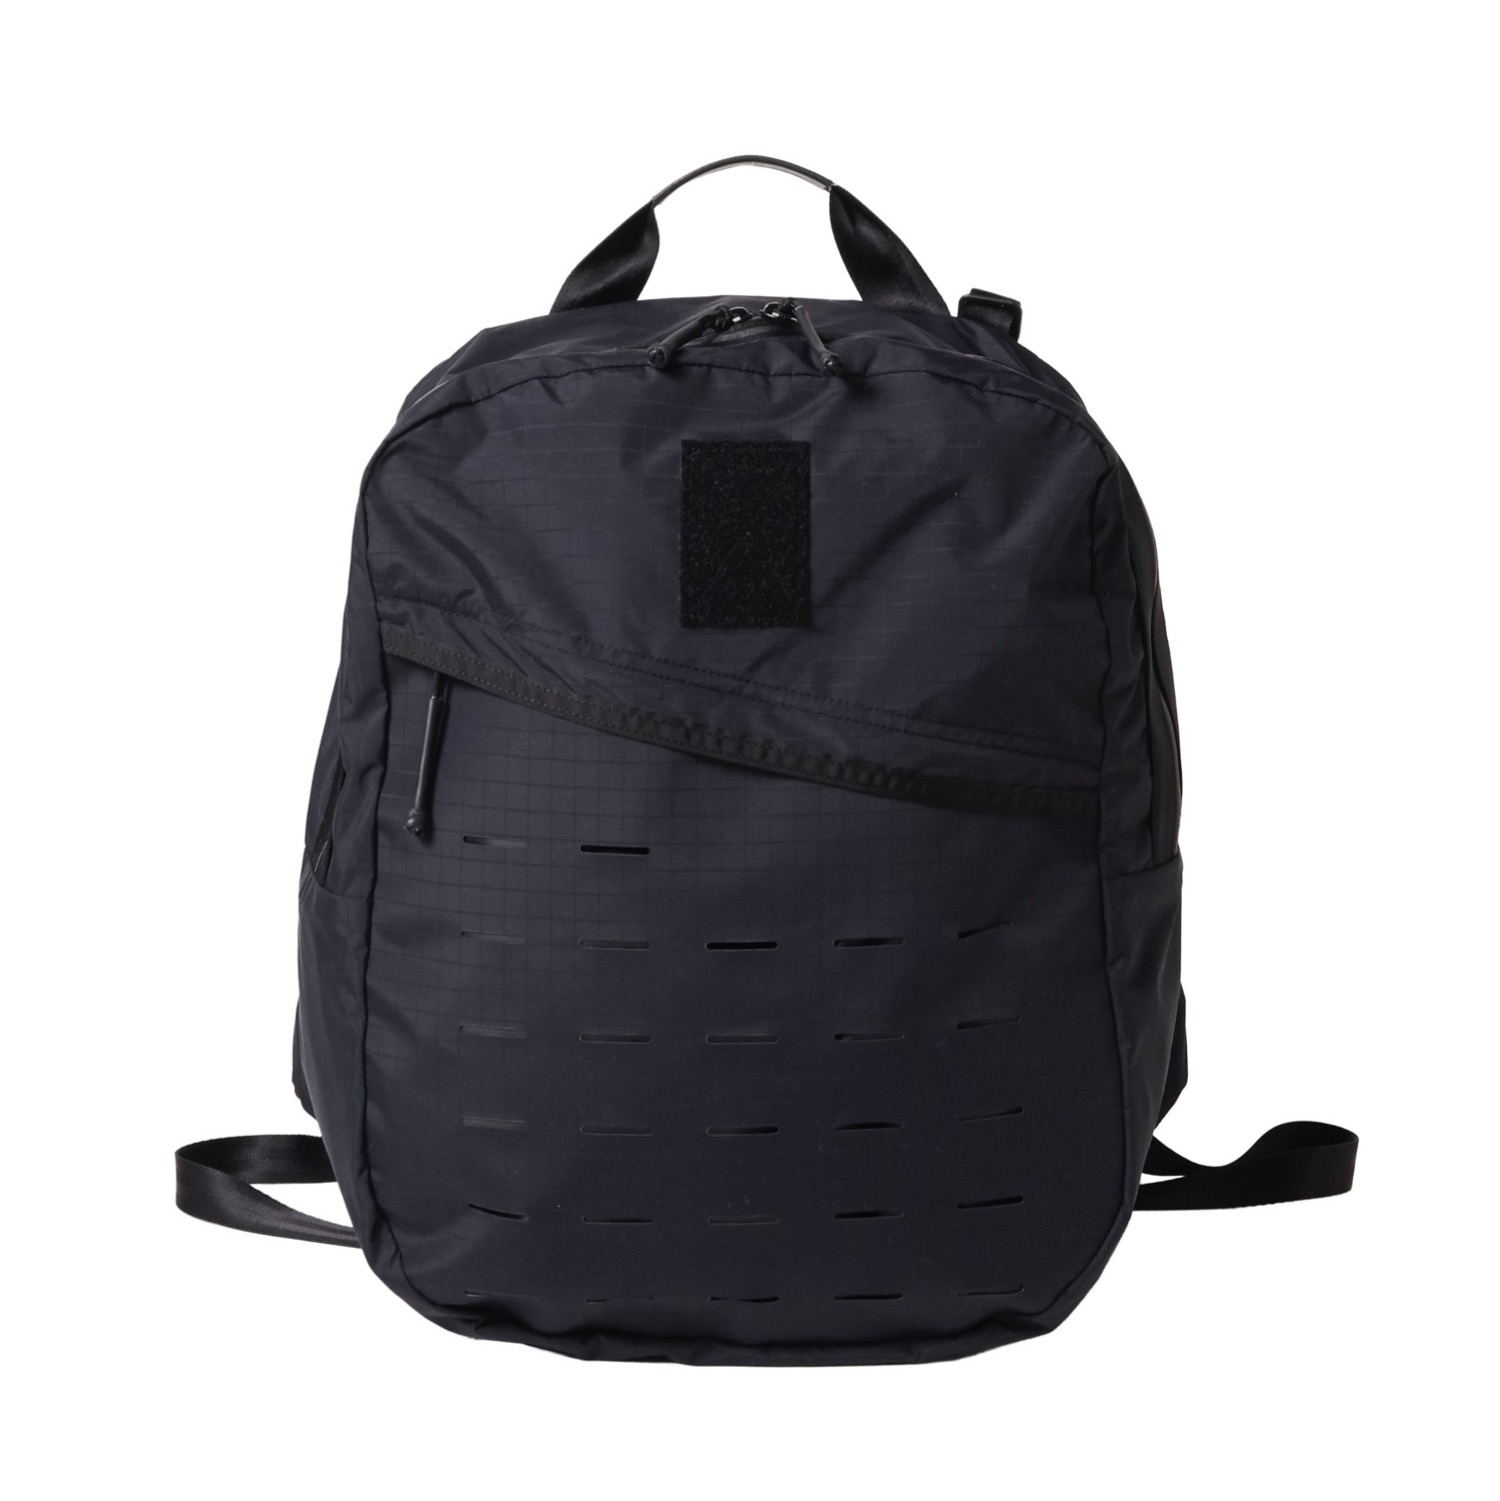 N.HOOLYWOOD TEST PRODUCT EXCHANGE SERVICE × GREGORY / 9211-AC07 pieces BACK PACK